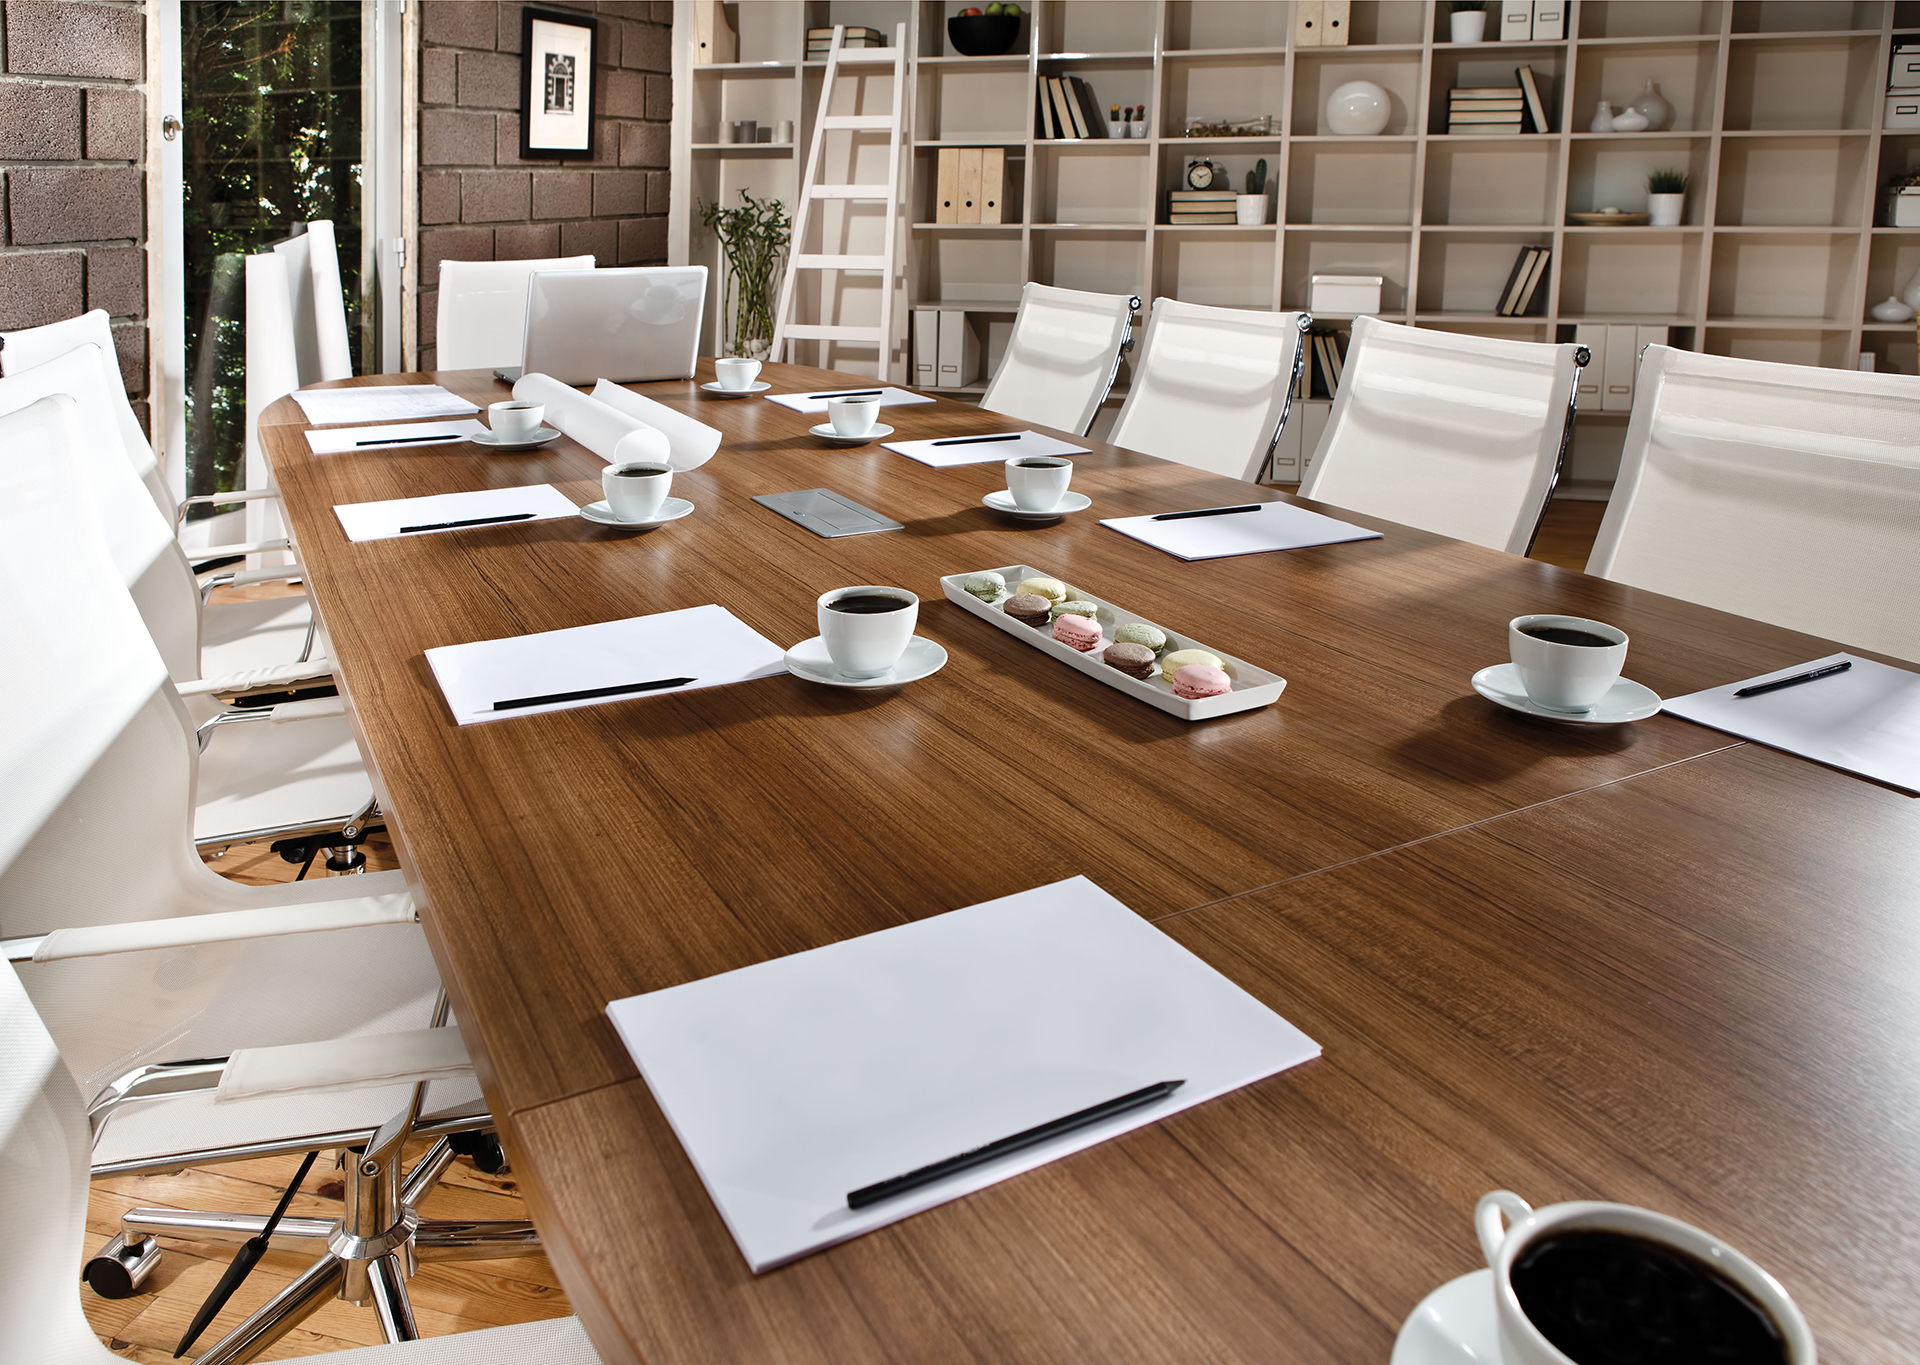 Boardroom contemporanea